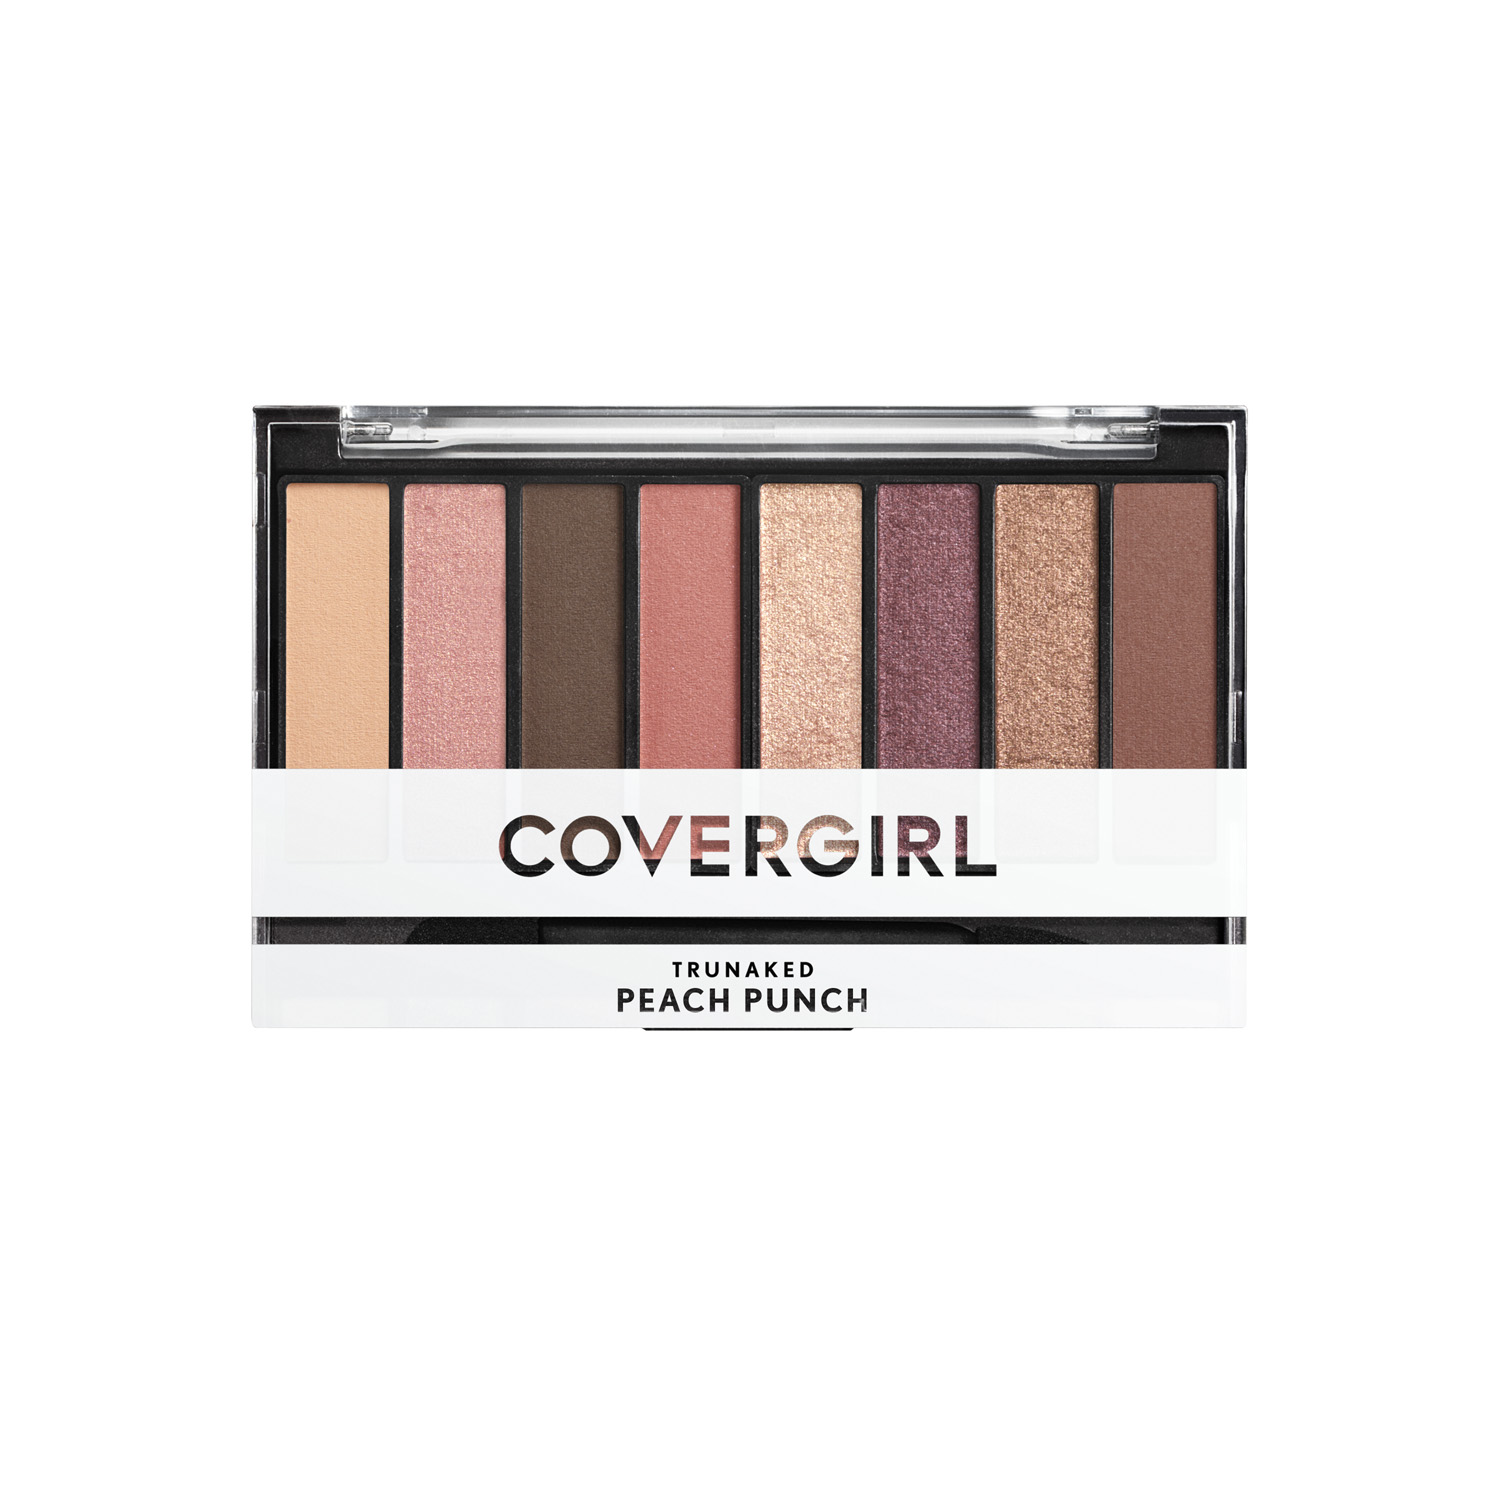 COVERGIRL EYE SHADOW PALETTE